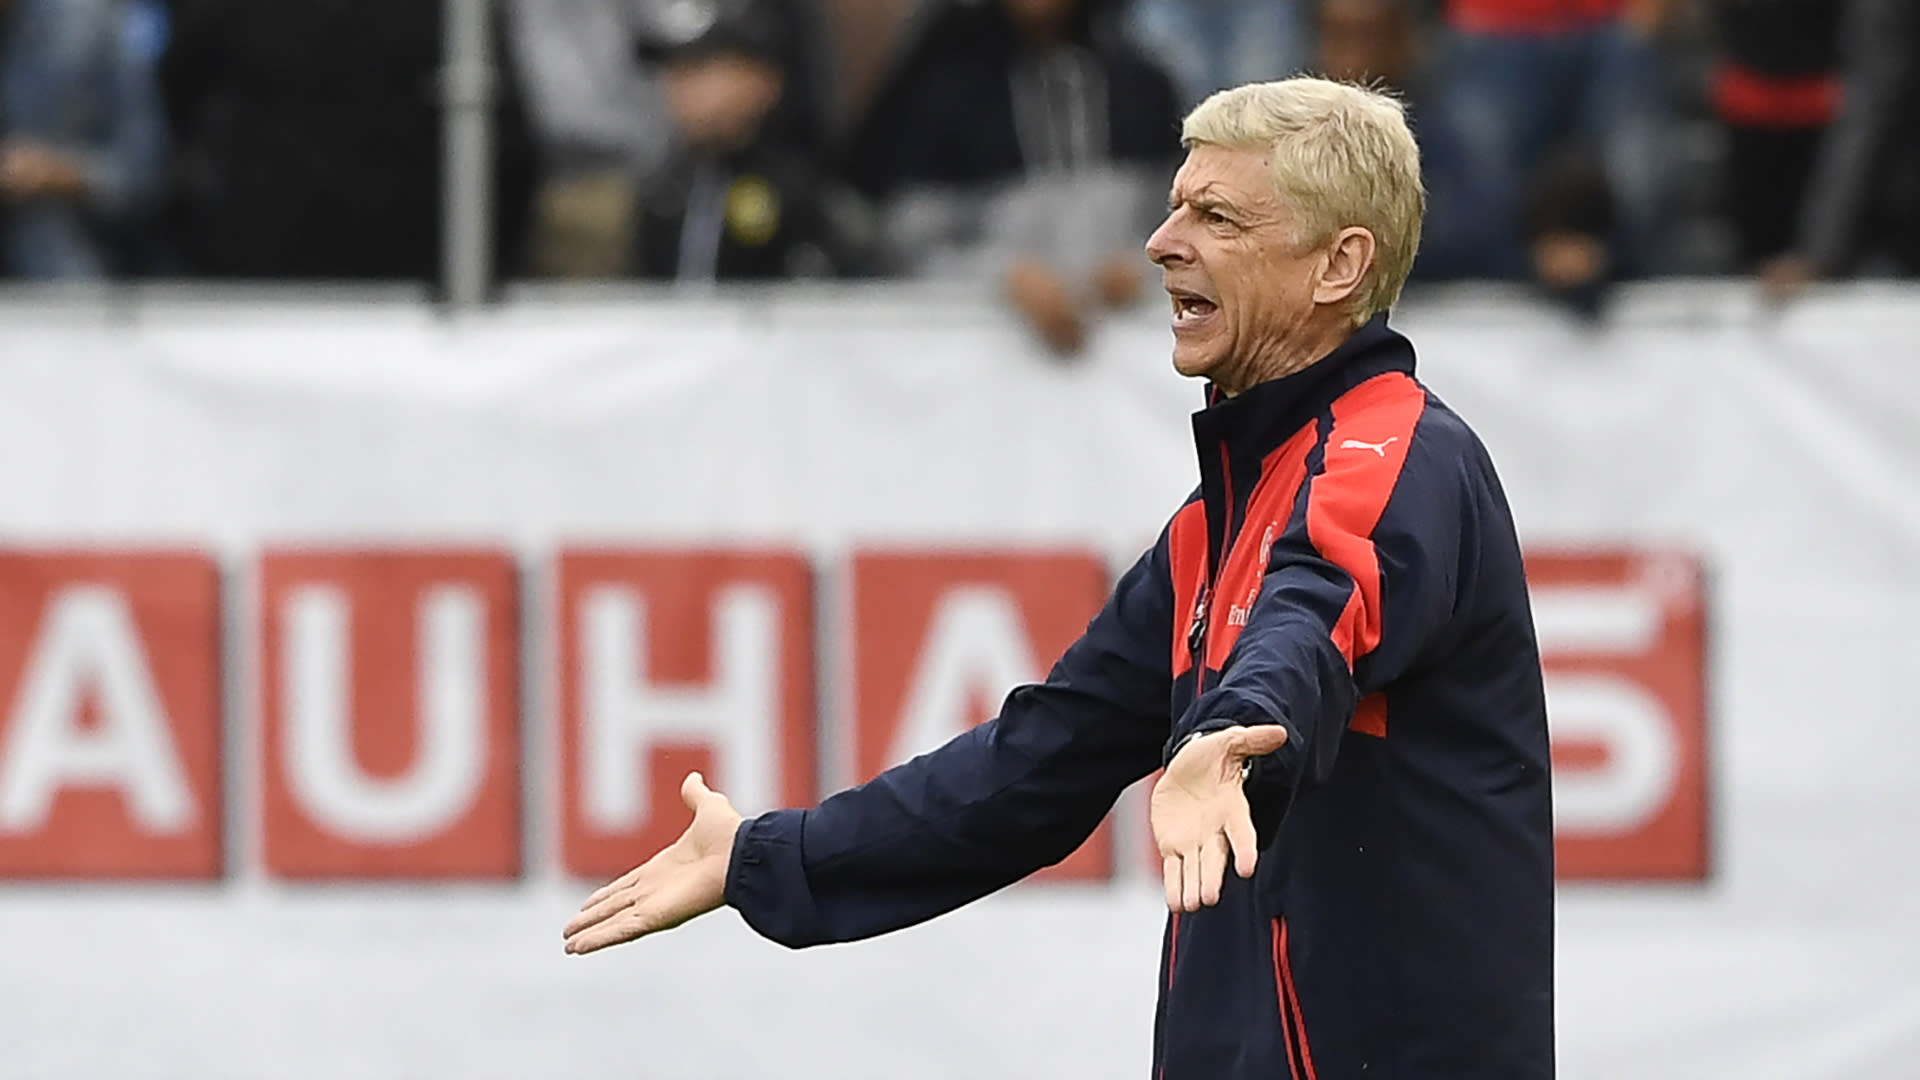 Glenn Hoddle exclusive: Clueless Arsenal fans have no right to call for Arsene Wenger's head